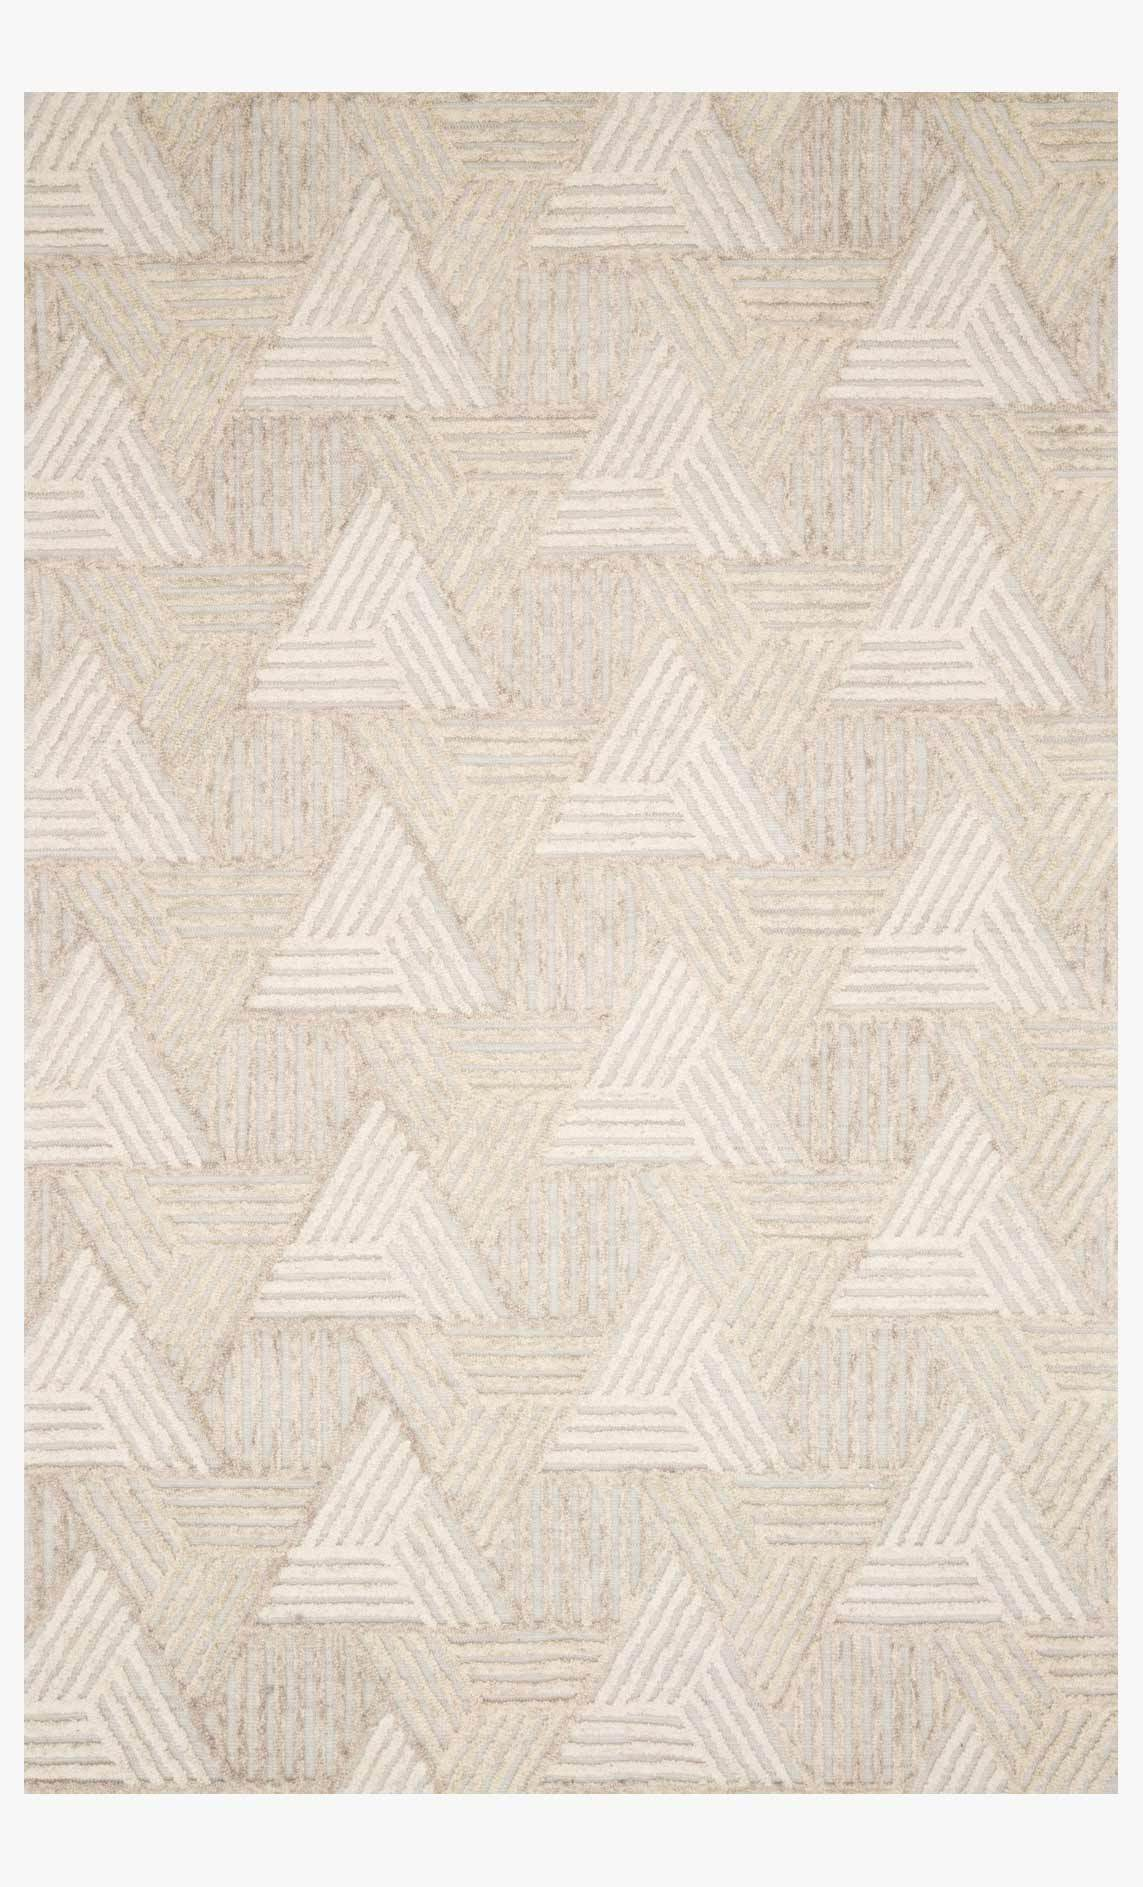 EHREN COLLECTION - EHR-04 OATMEAL/IVORY - Home Office Makeover